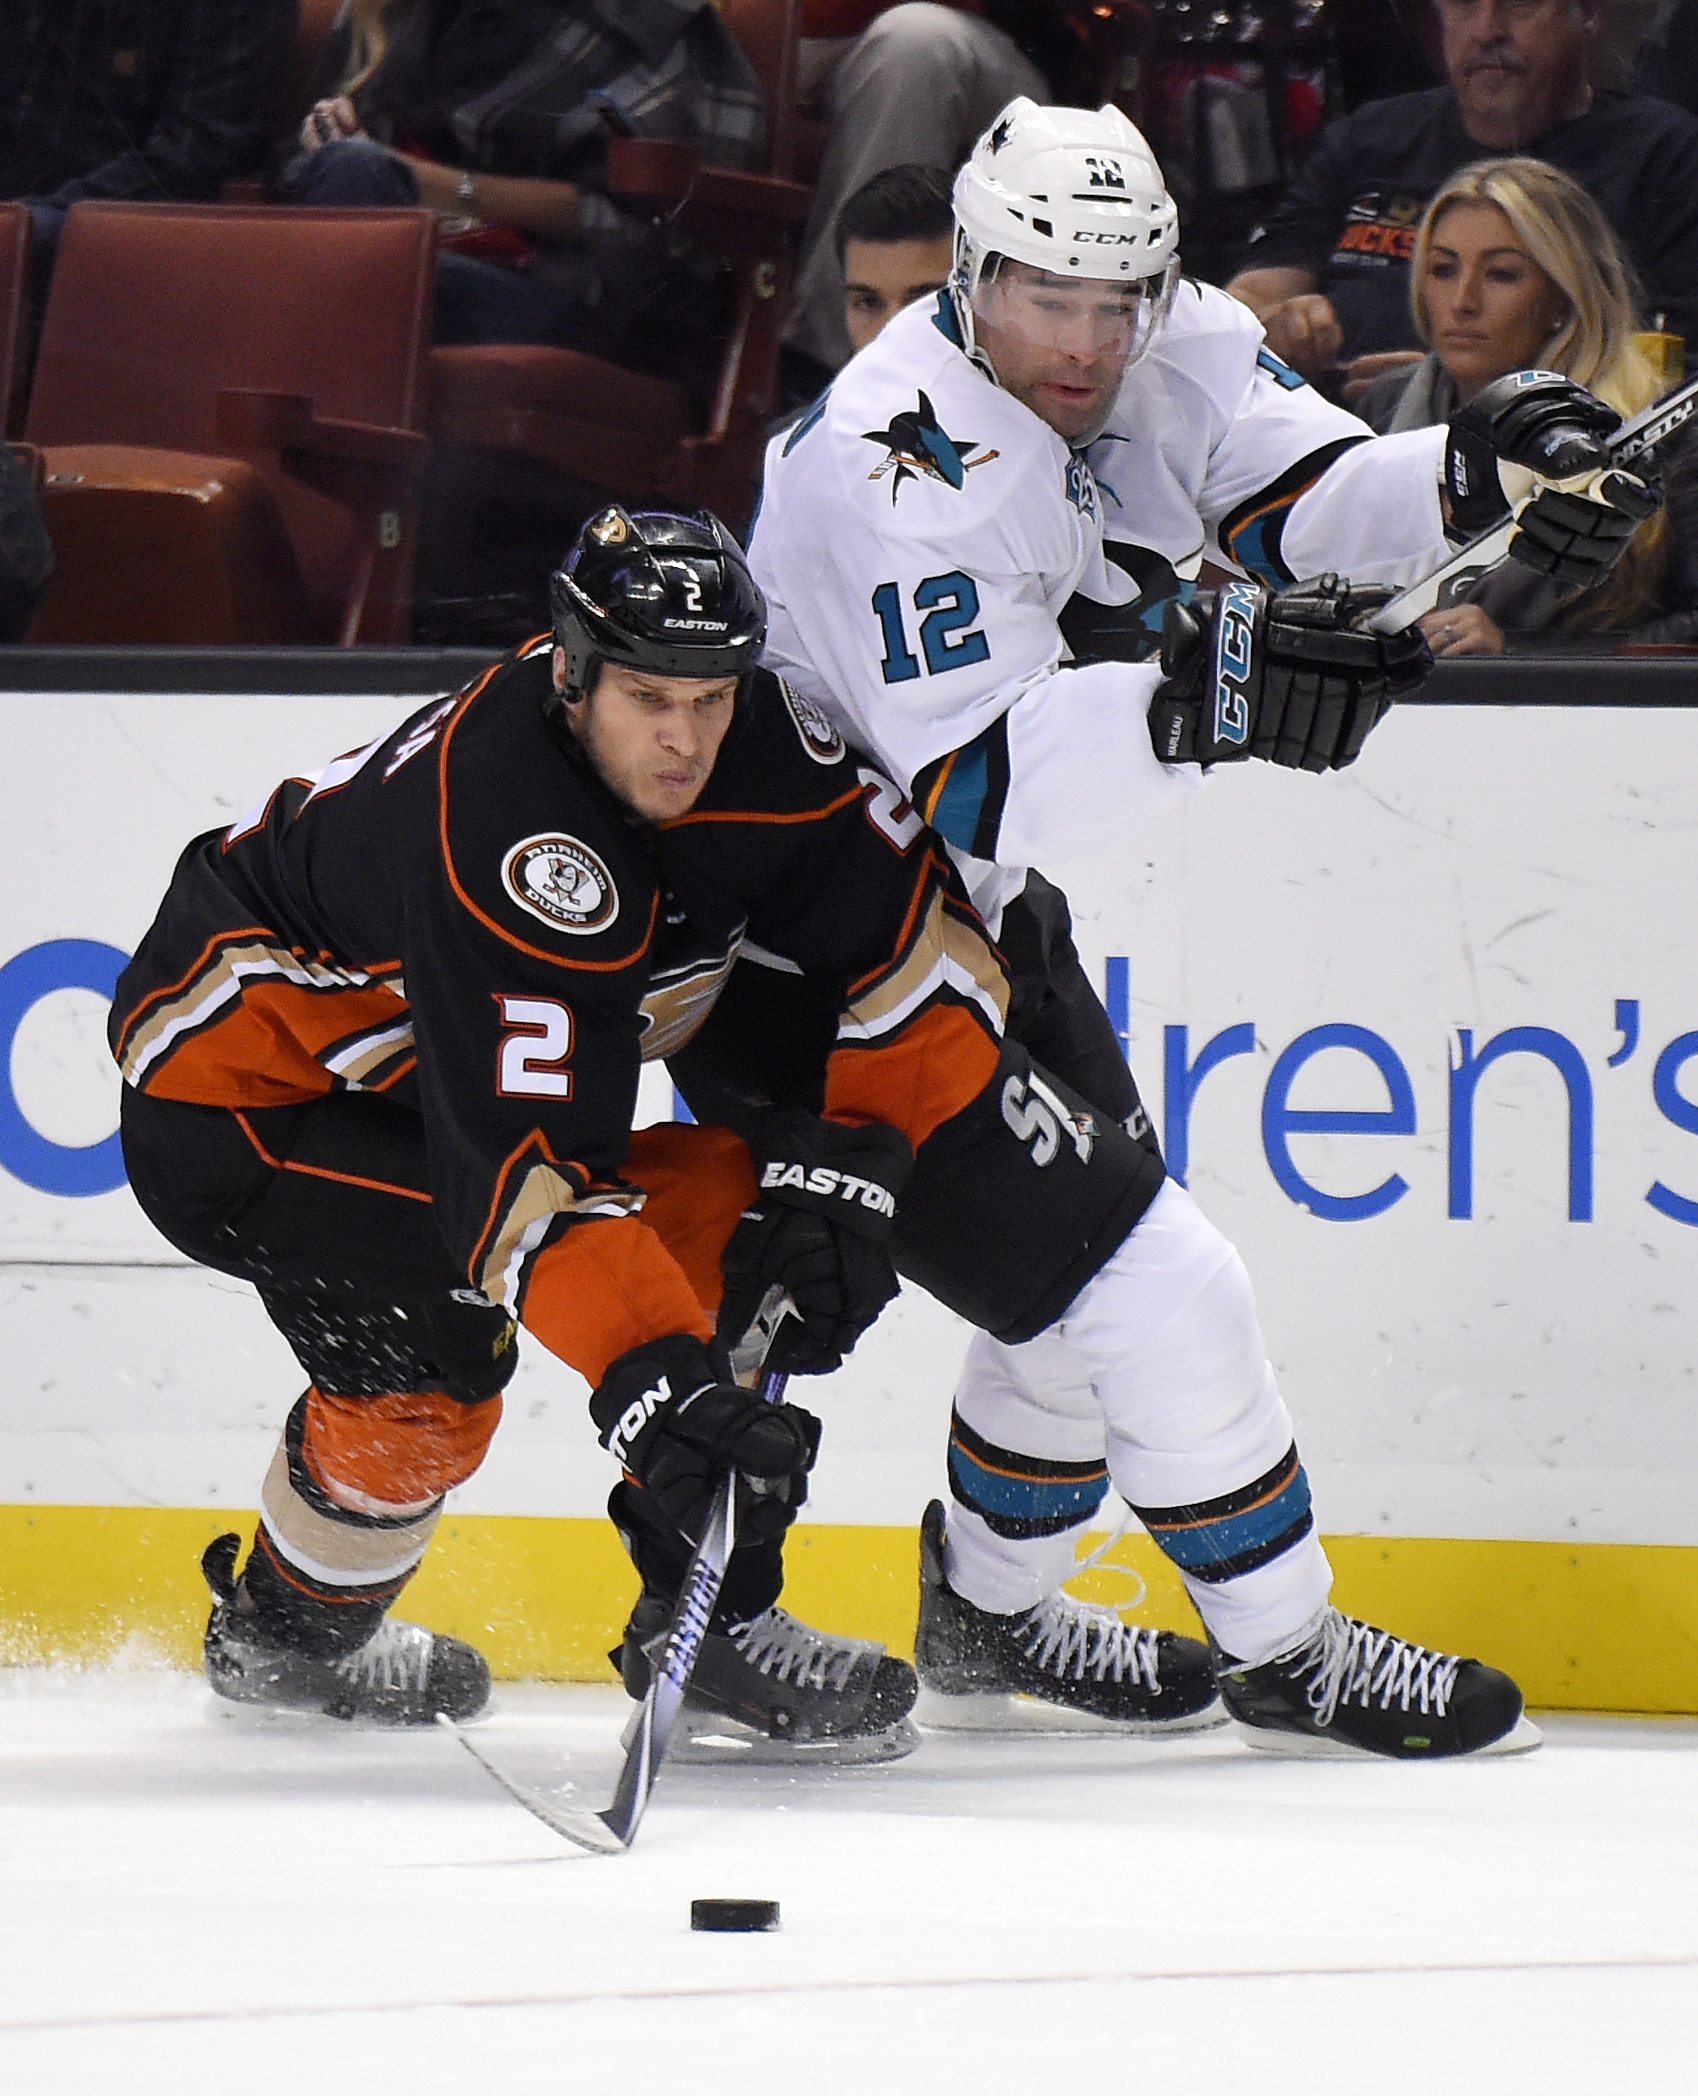 Anaheim Ducks defenseman Kevin Bieksa, left, and San Jose Sharks center Patrick Marleau vie for the puck during the first period of an NHL hockey game, Friday, Dec. 4, 2015, in Anaheim, Calif. (AP Photo/Mark J. Terrill)